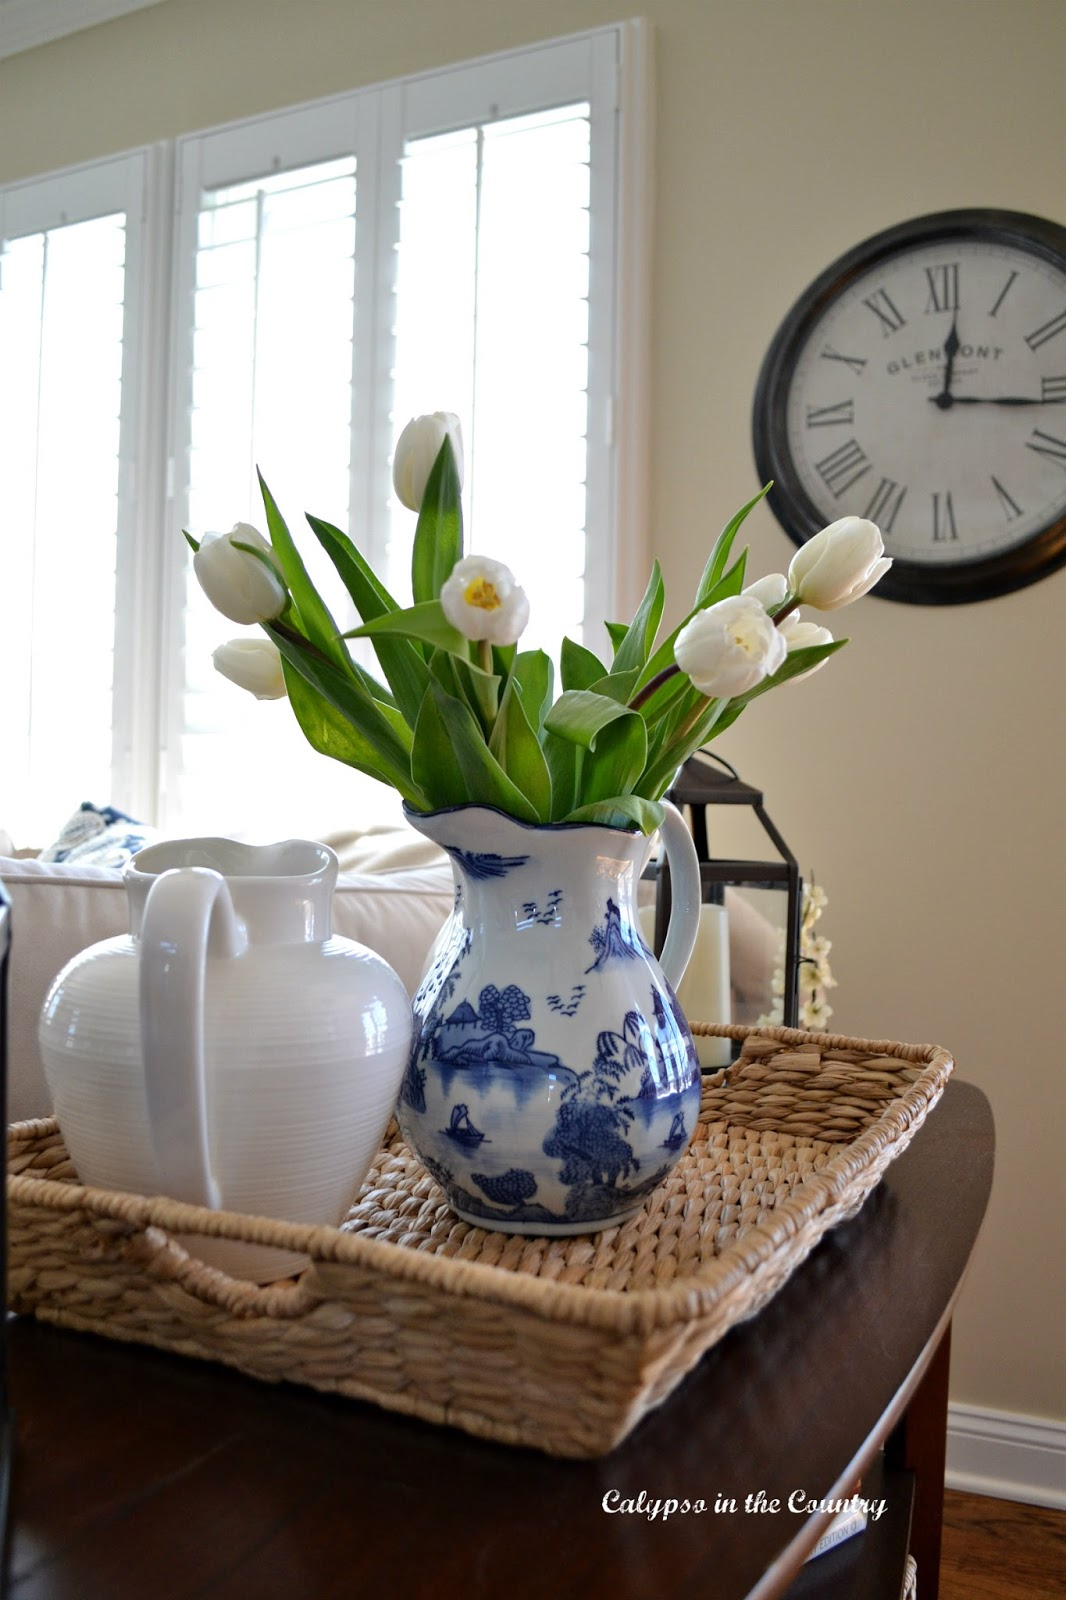 White tulips for spring